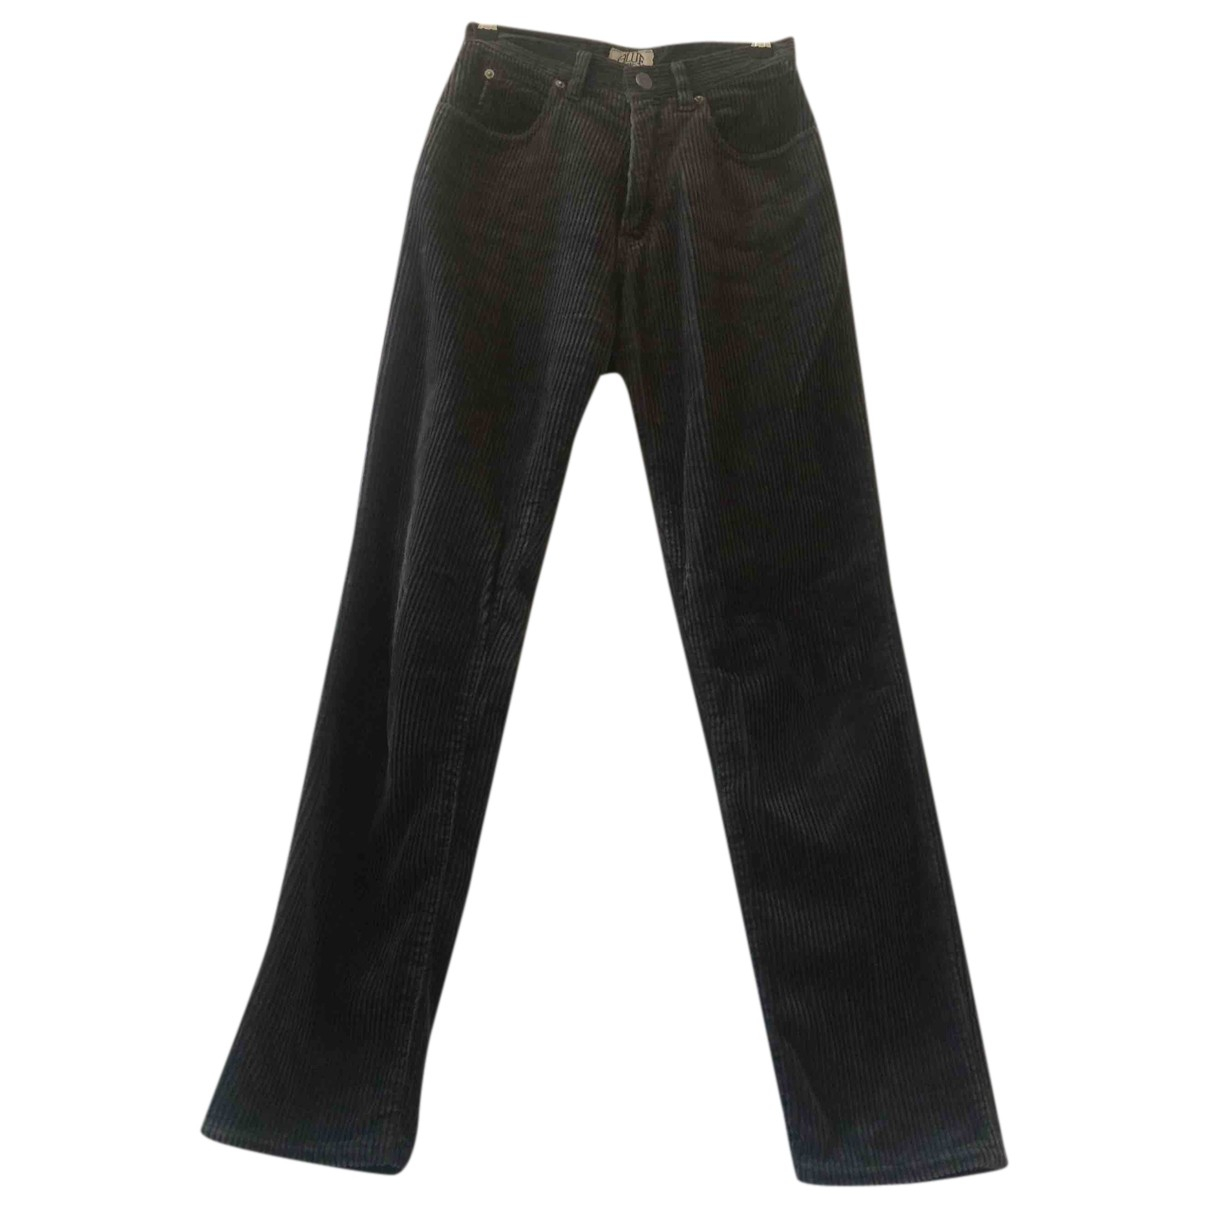 Armani Jeans N Grey Cotton Trousers for Women 38 FR